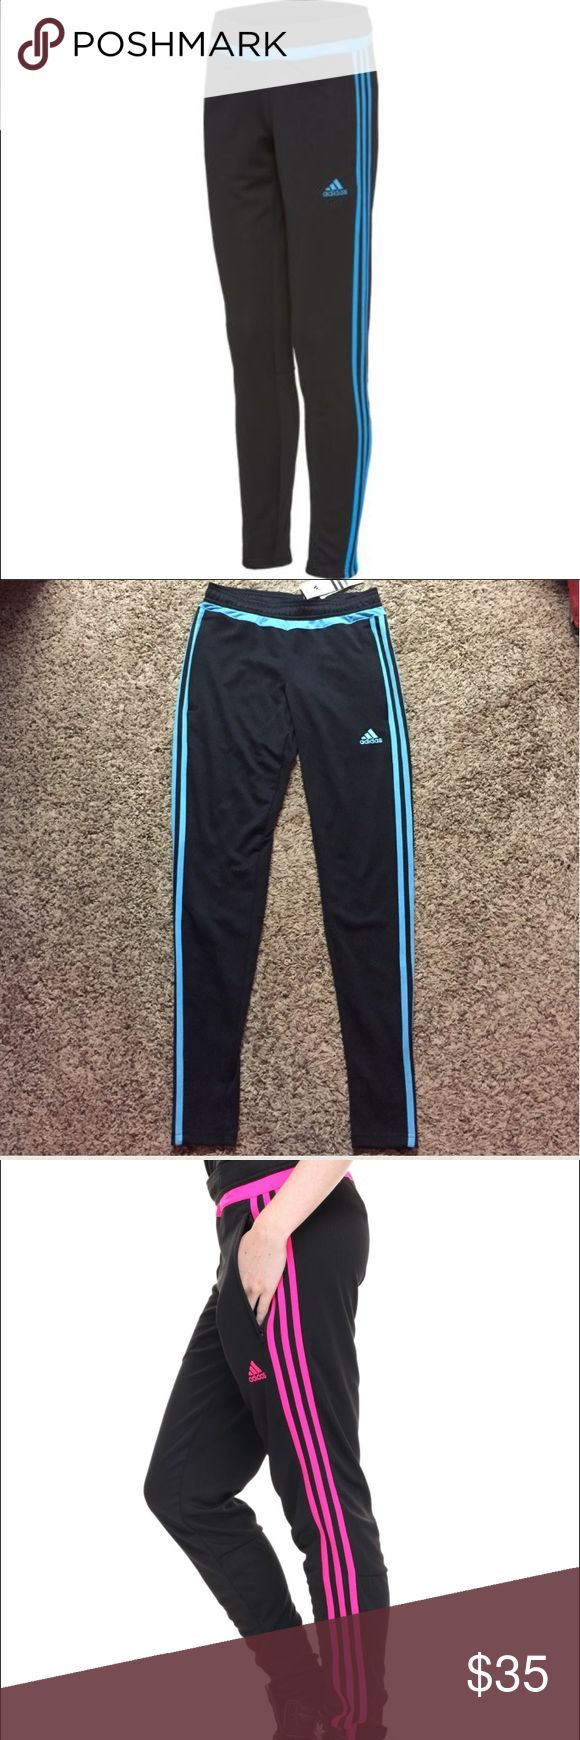 Adidas Climacool Skinny Pants Blue & black adidas pants. 2nd & 4th pictures of actual pants, other photos to show fit. Brand new with tags size XS & M. Adidas Pants Track Pants & Joggers